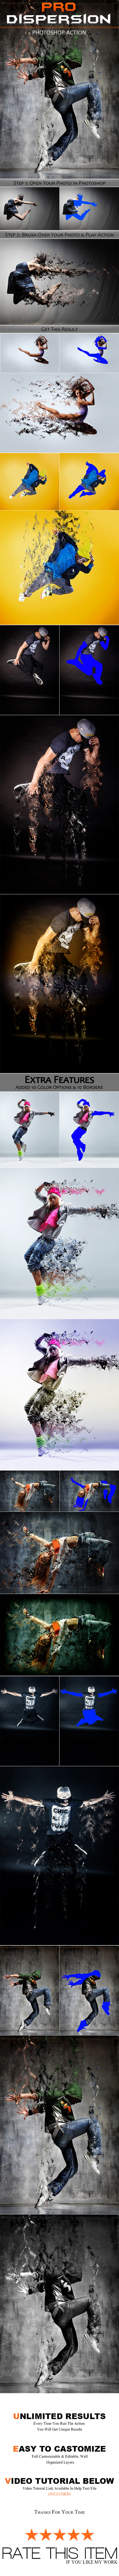 GraphicRiver Pro Dispersion PS Action 11955372